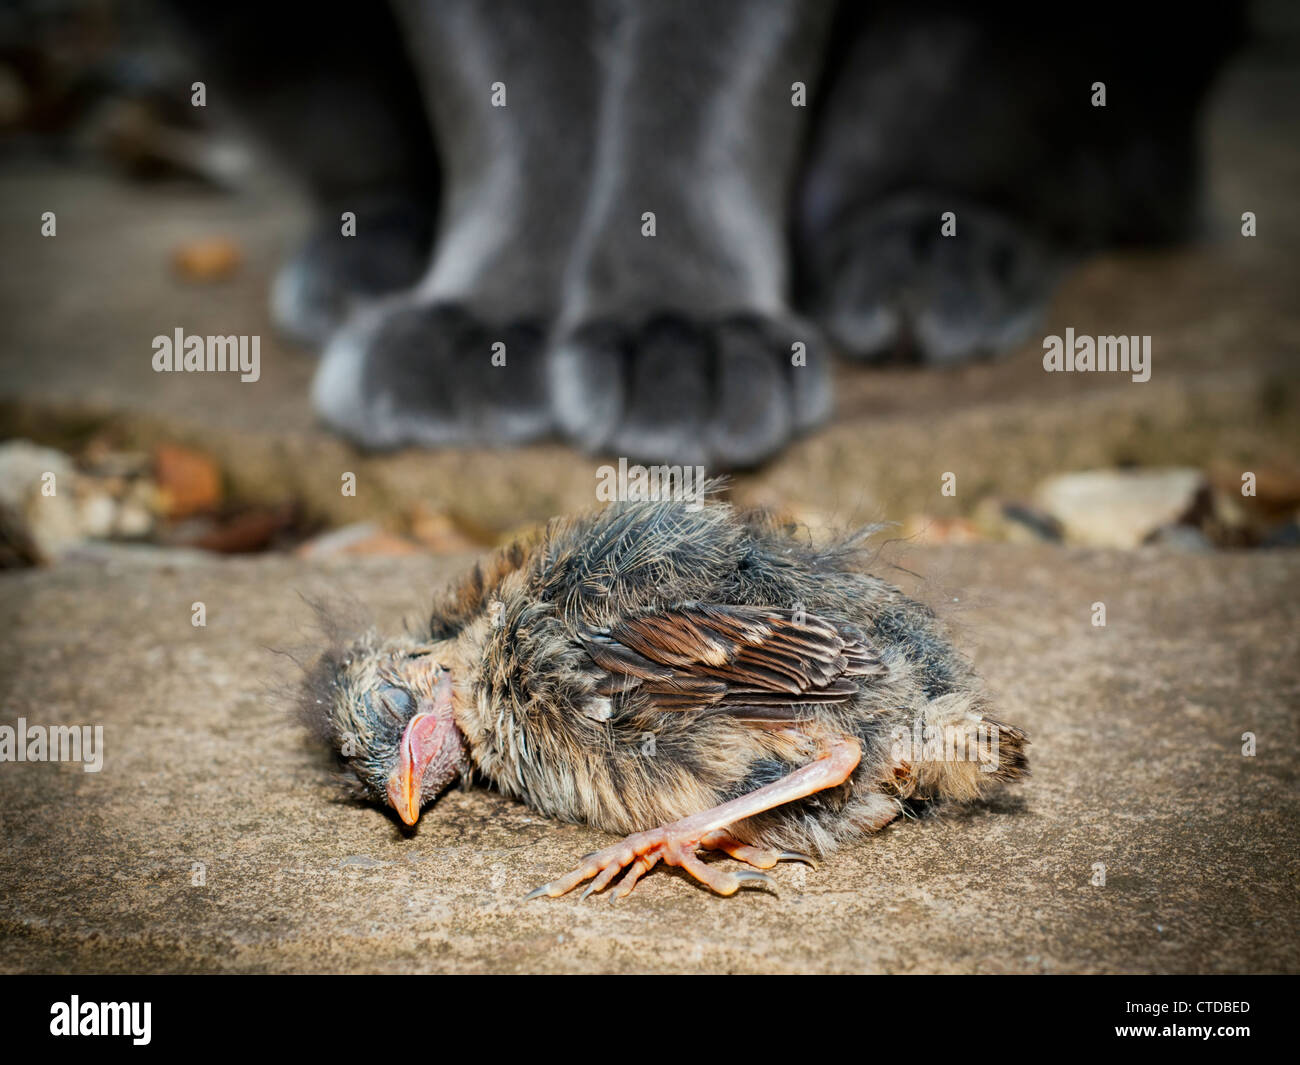 Young bird killed by domestic cat Stock Photo